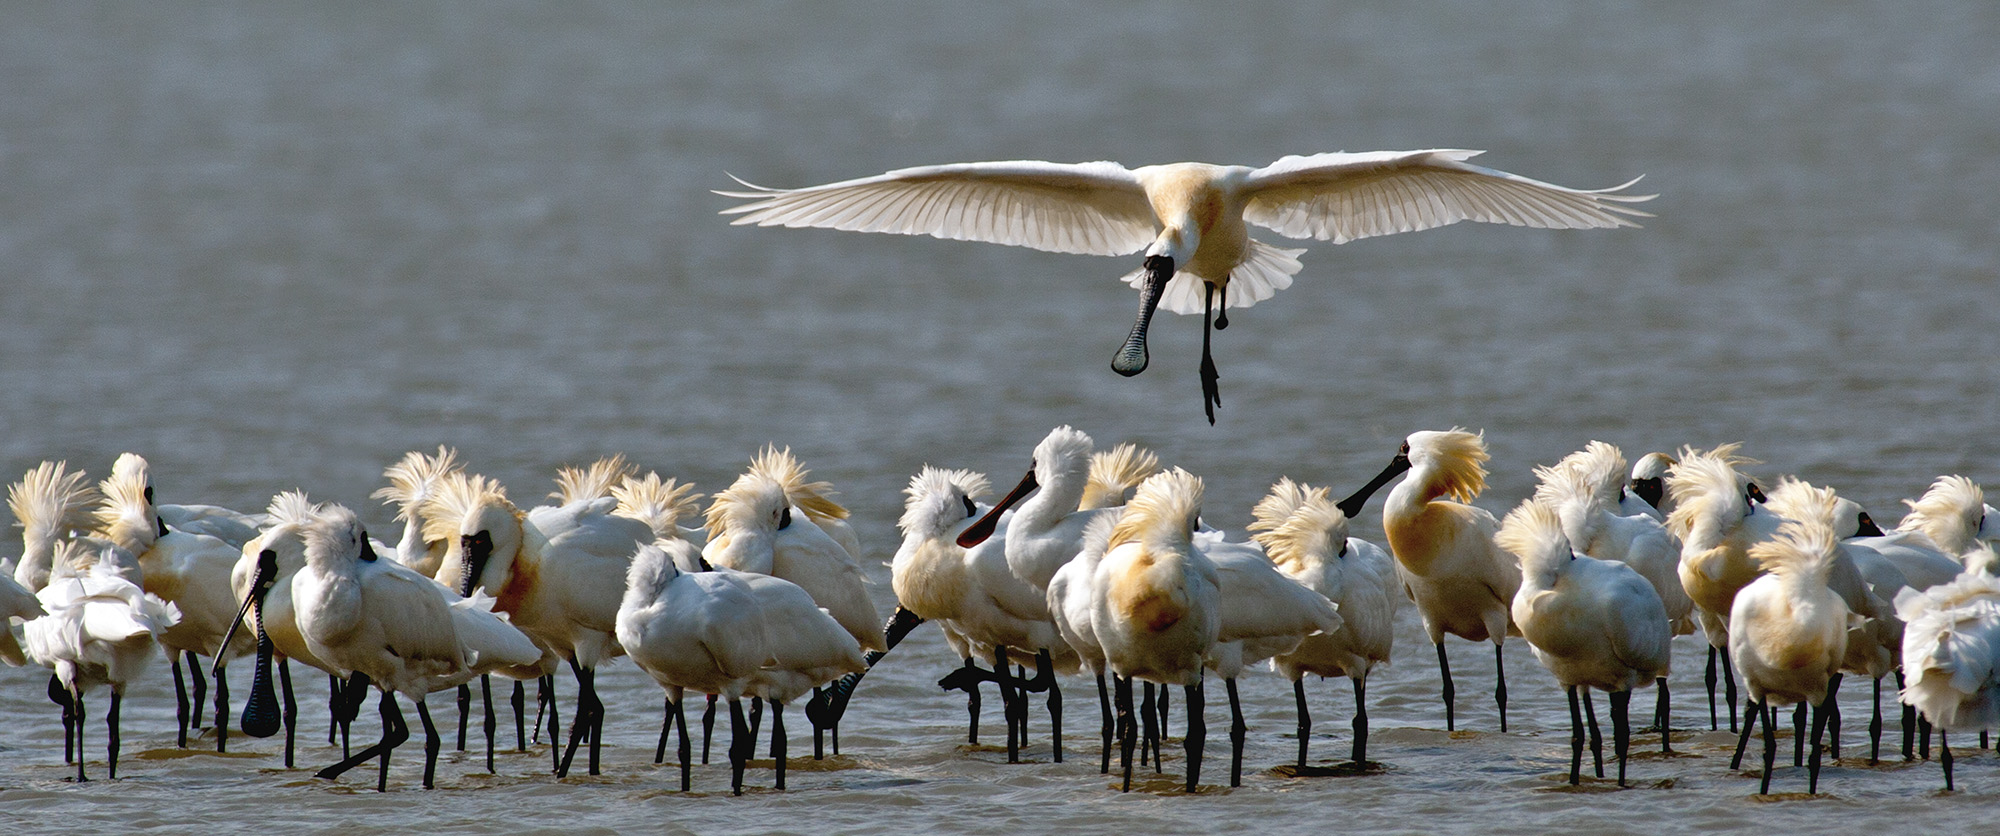 During the black-faced spoonbill's reproductive season, the adult birds grow yellow breeding plumage on their heads and breasts.